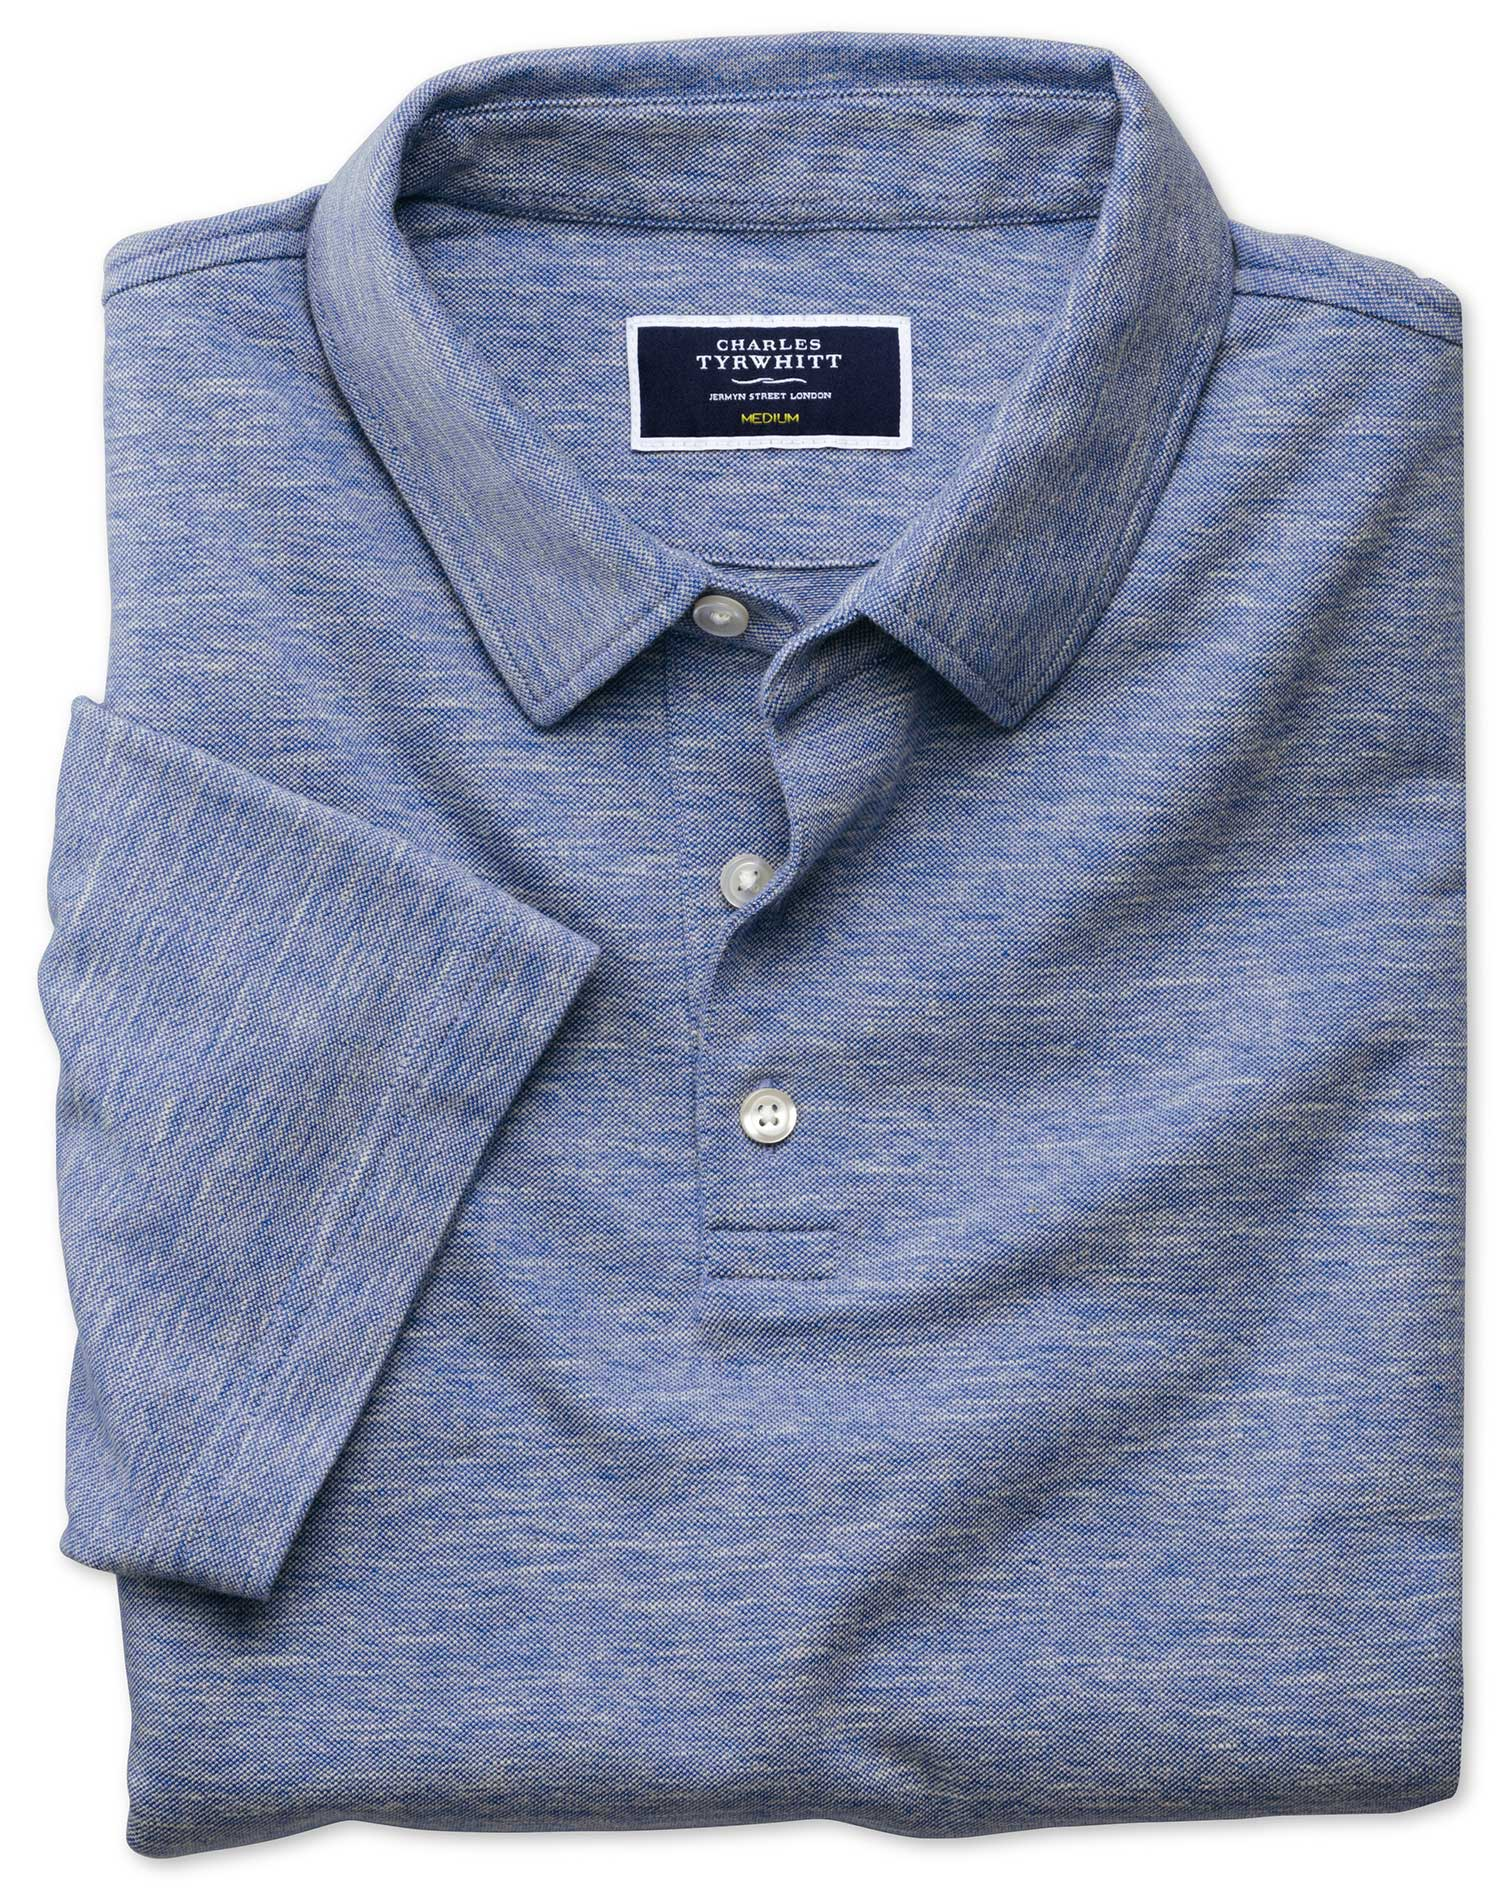 Mid Blue Cotton Linen Polo Size Large by Charles Tyrwhitt